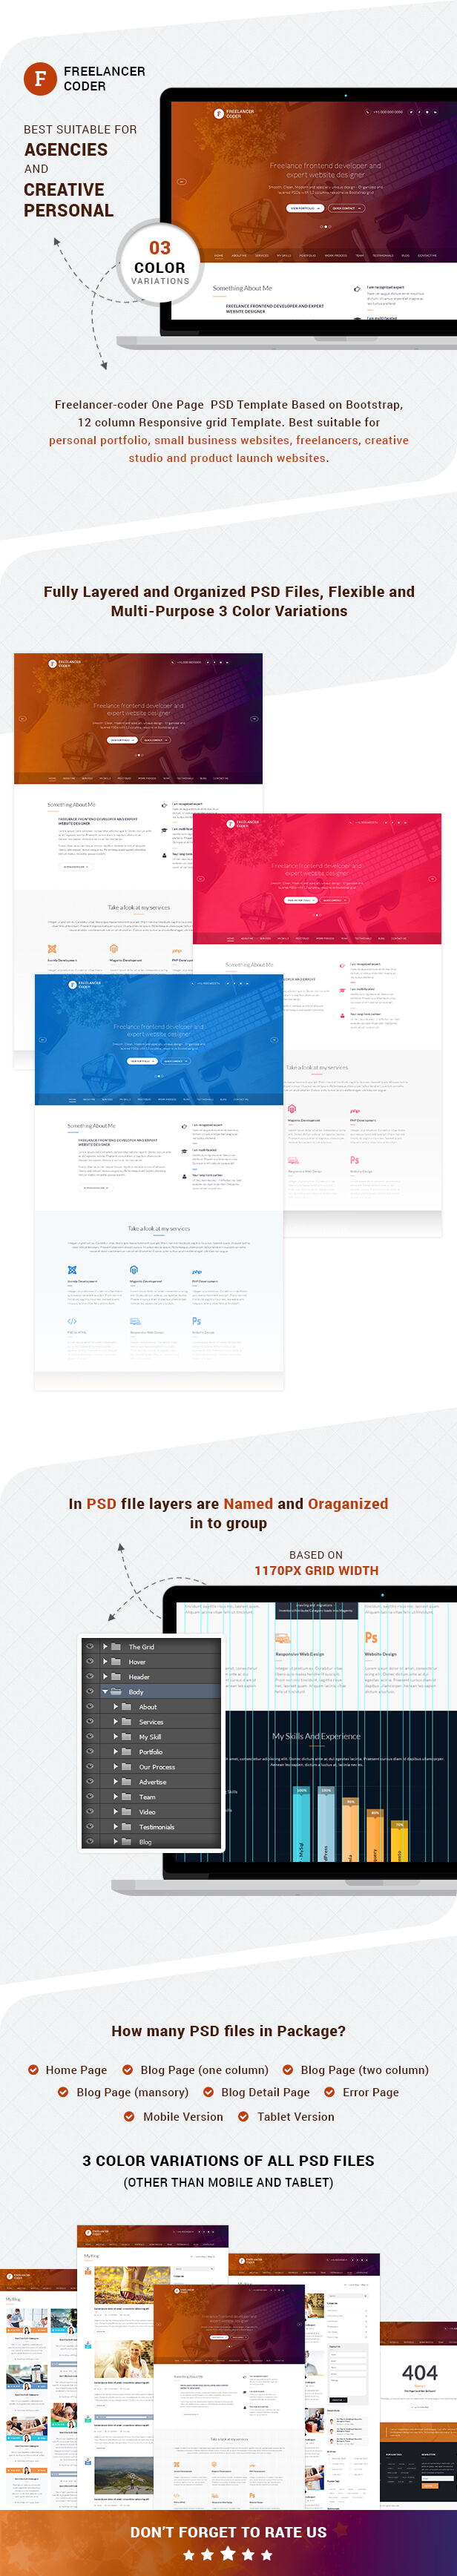 One page PSD template - Freelancer Coder Overview